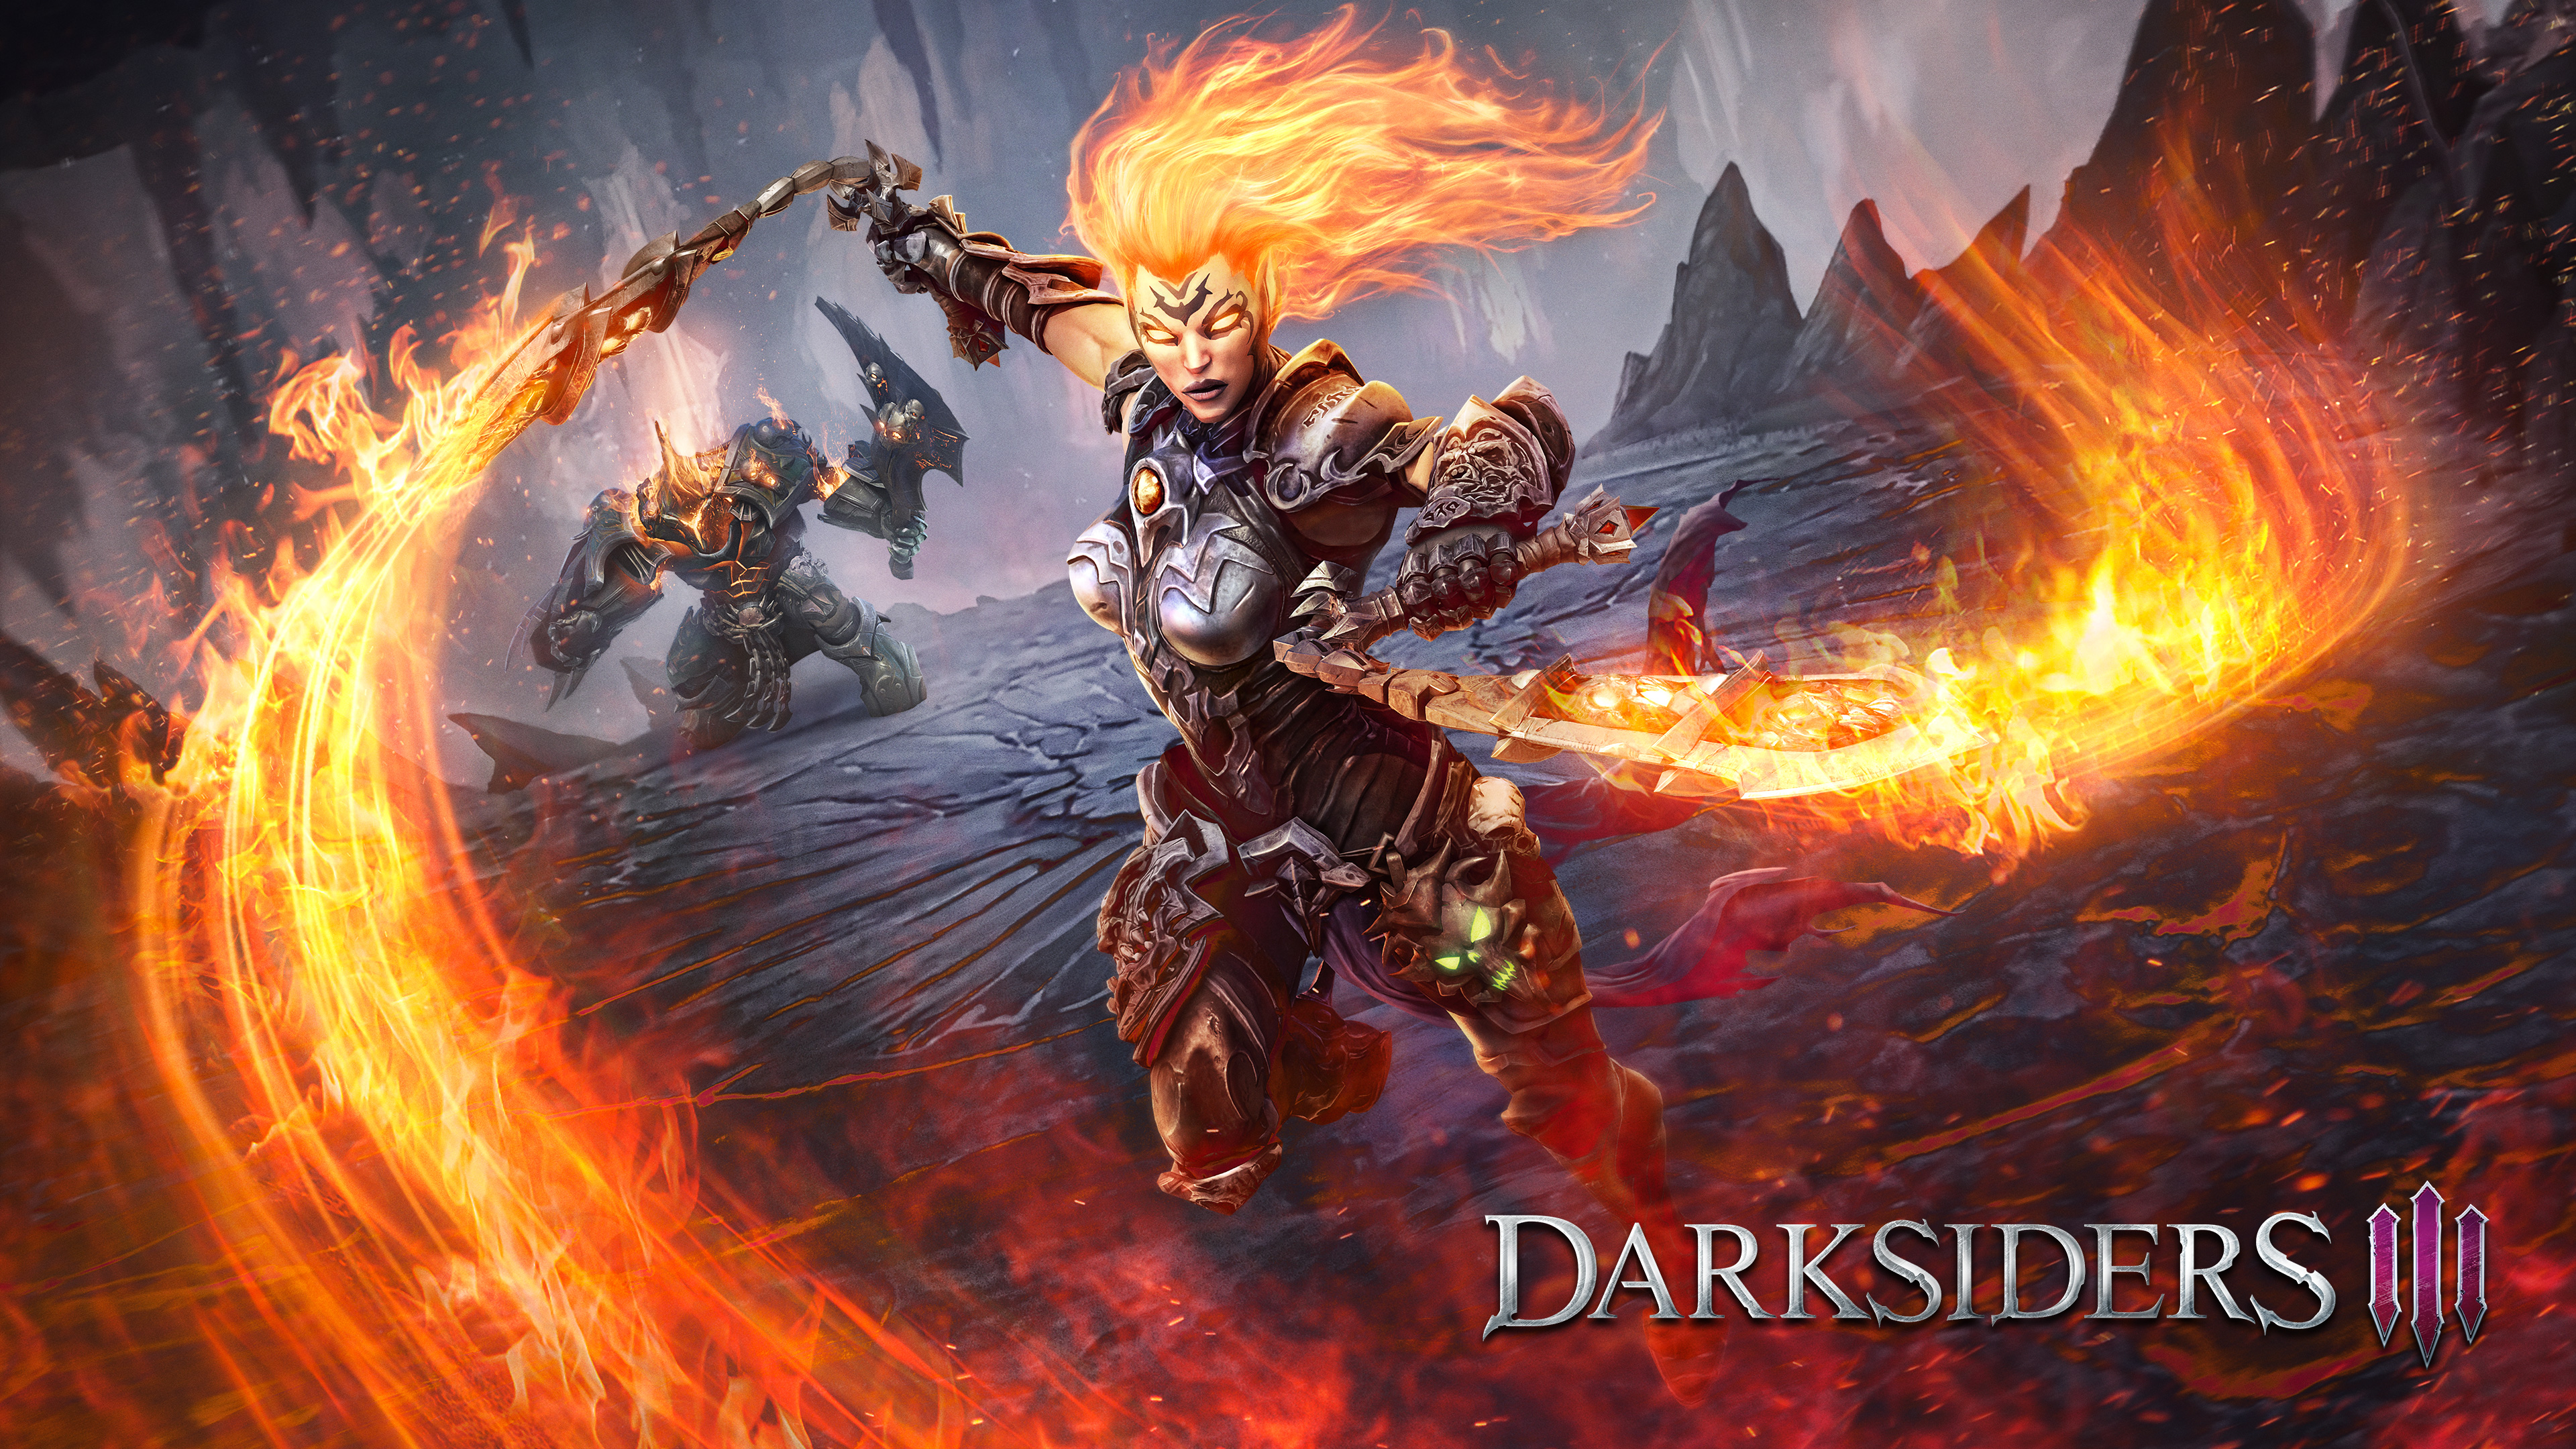 Darksiders III 4k Ultra HD Wallpaper Background Image 3840x2160